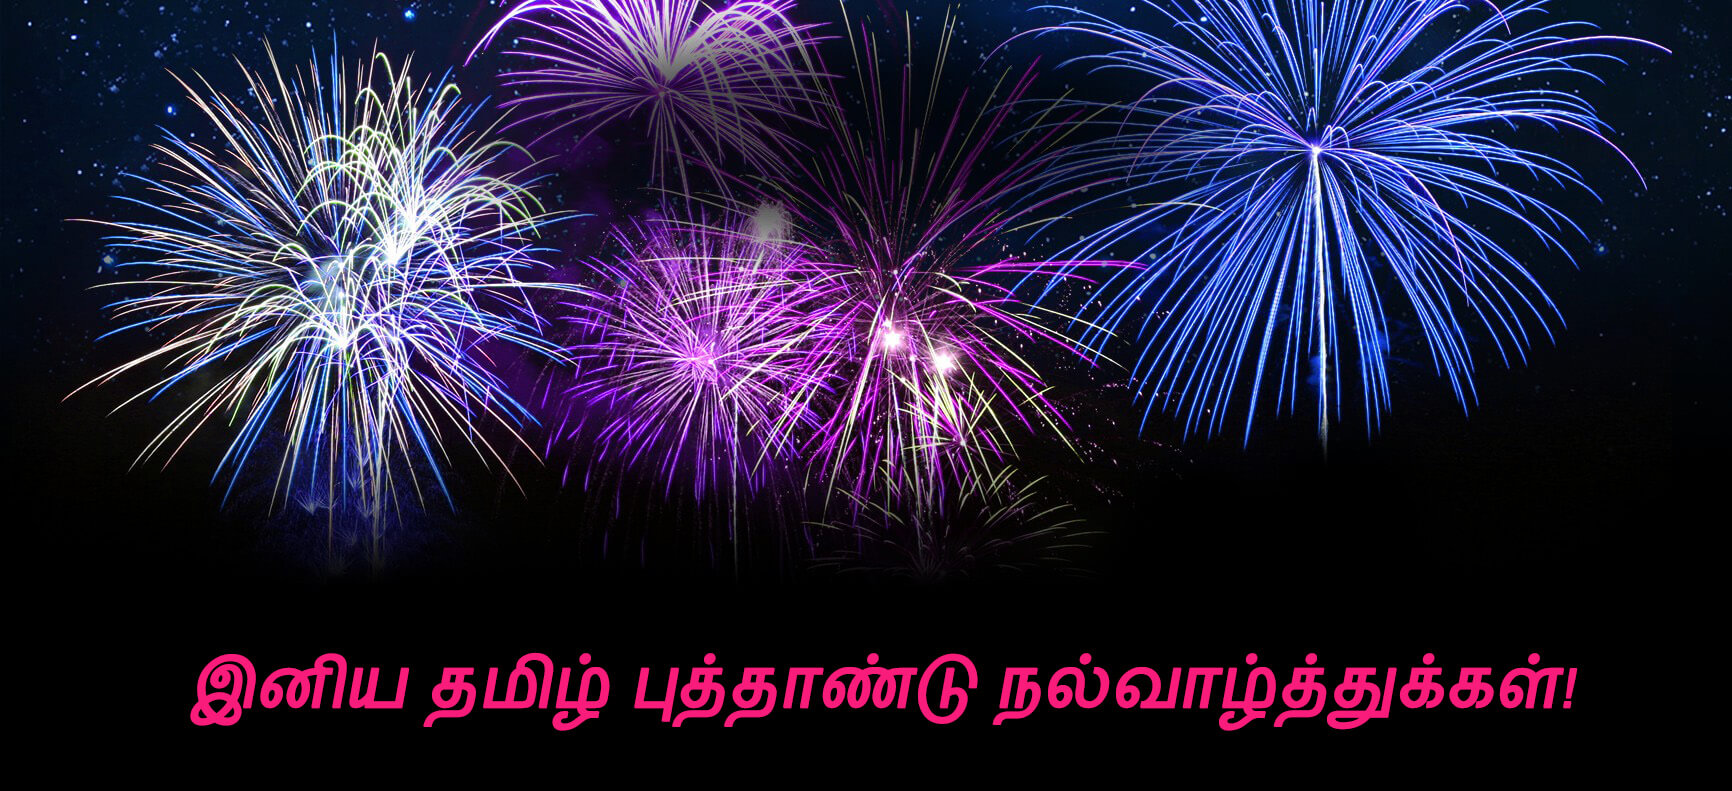 happy tamil new year greetings puthaandu fireworks hd wallpaper